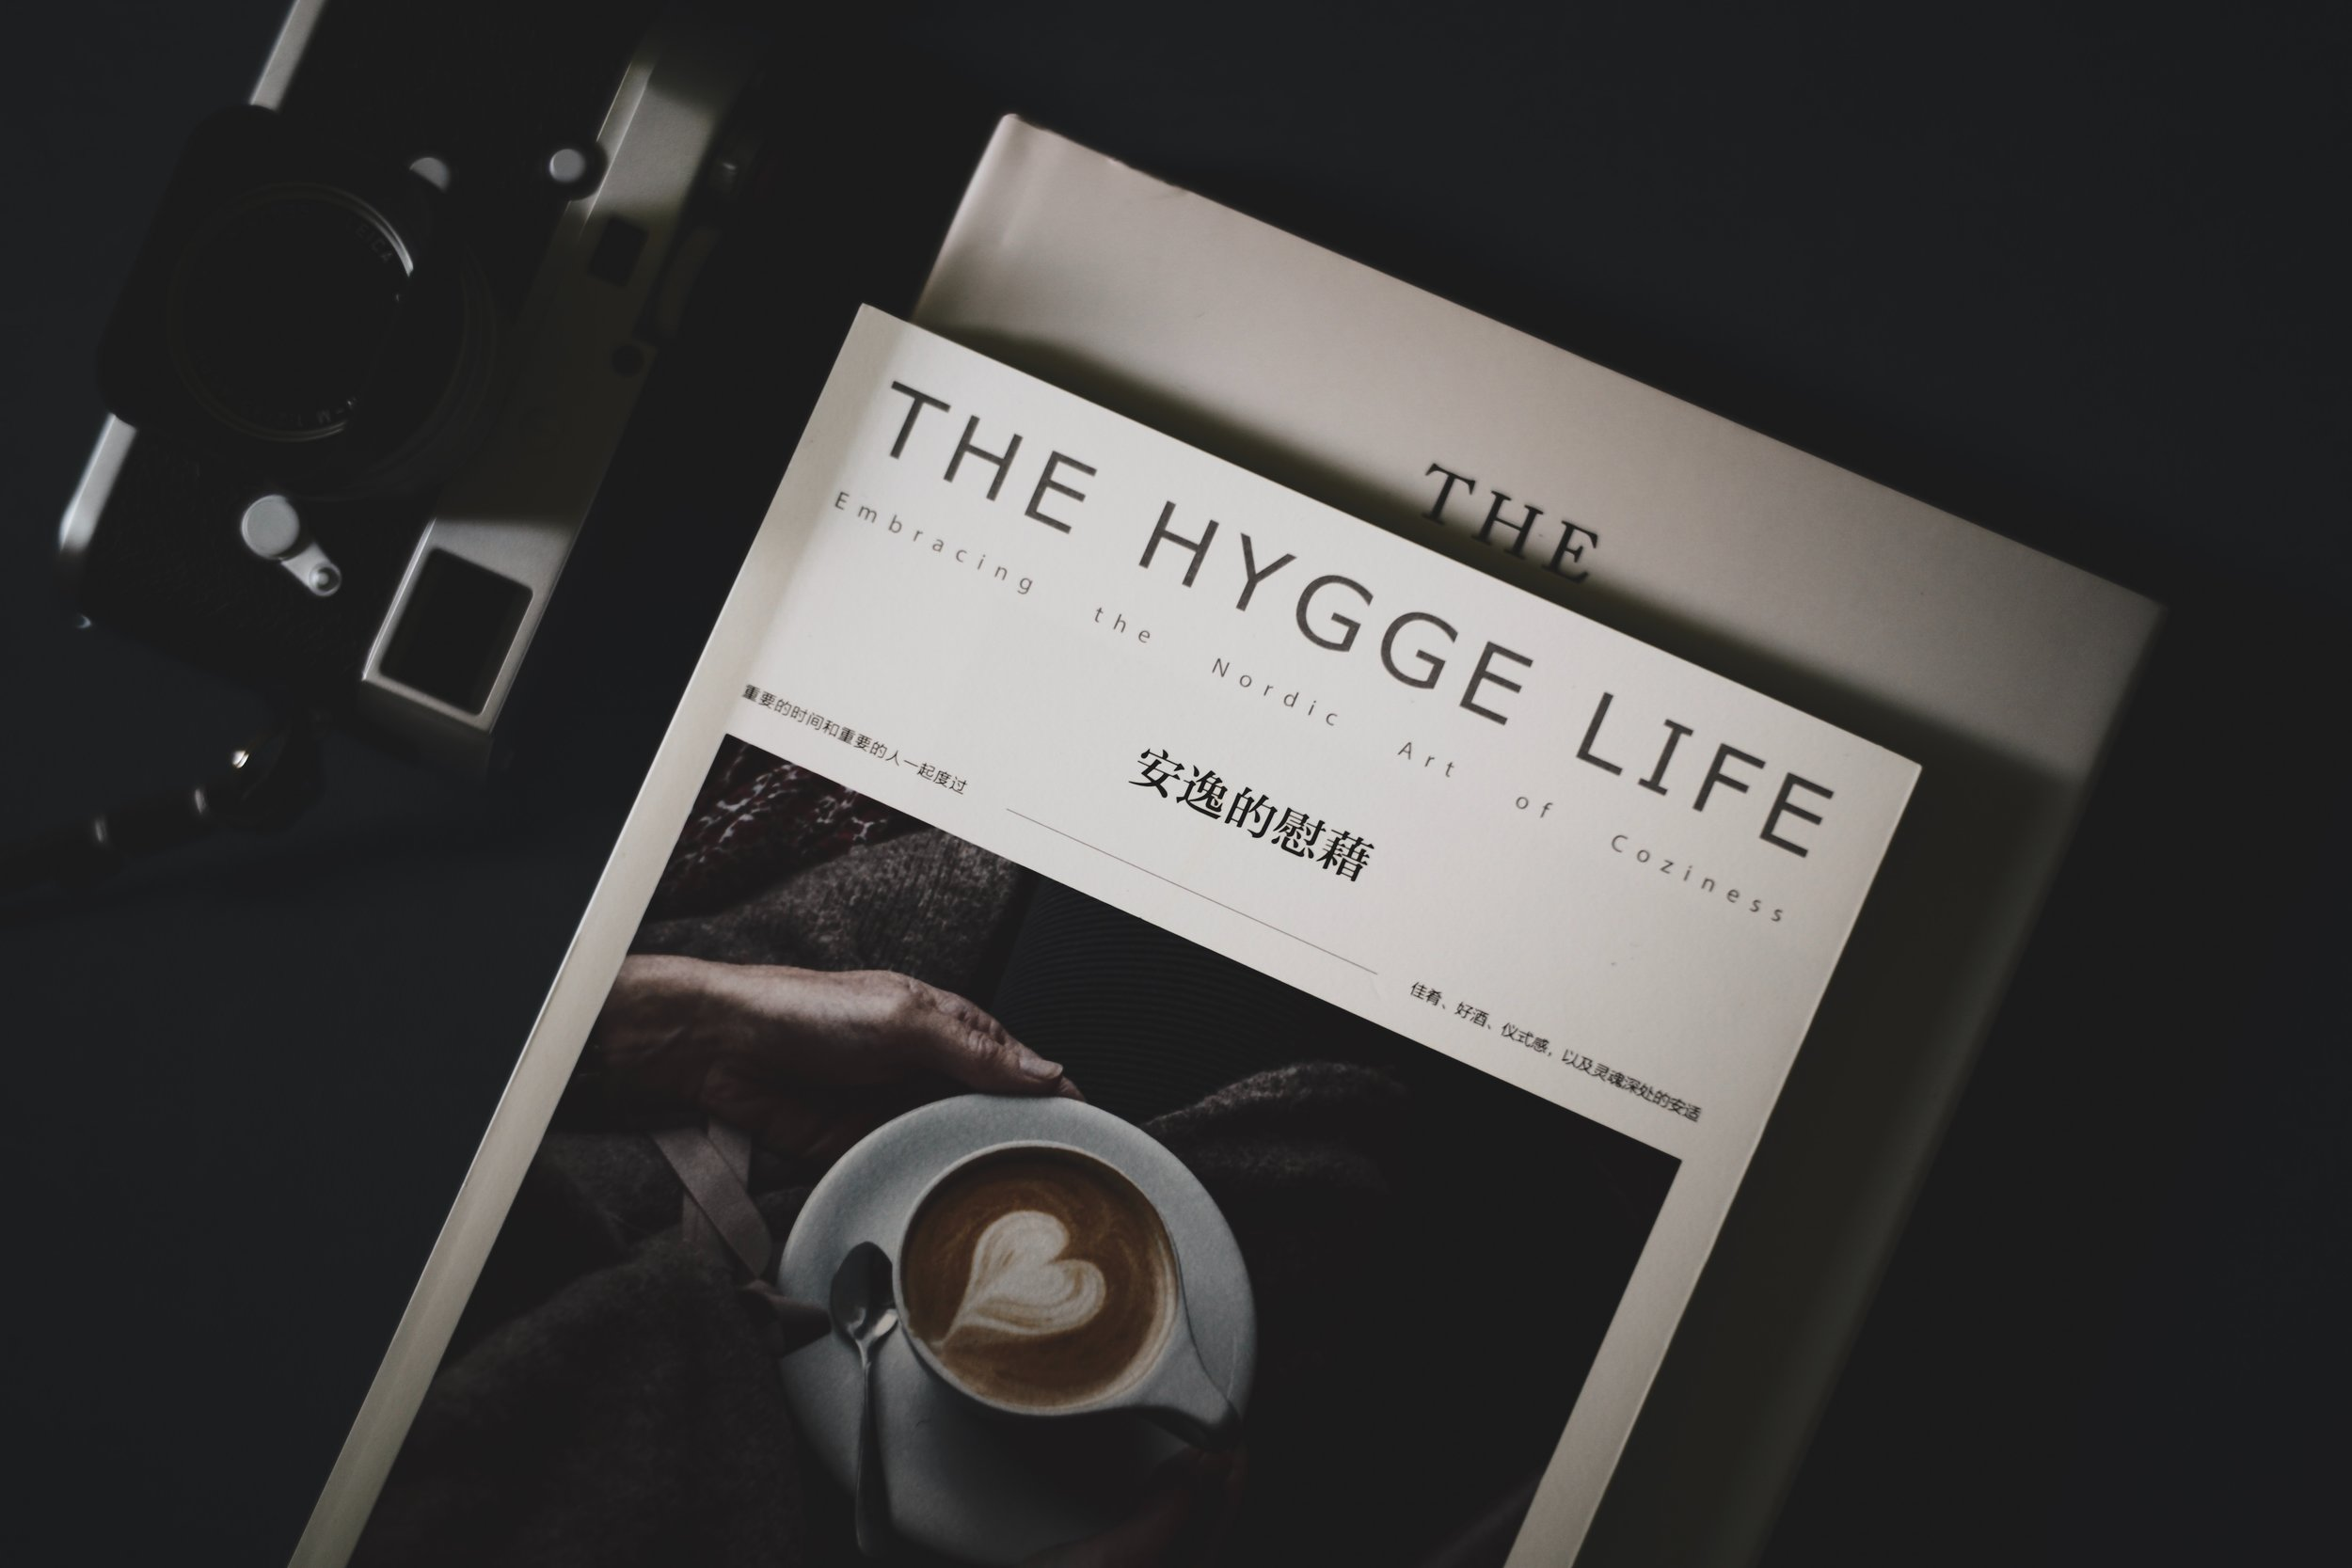 Embrace the Hygge